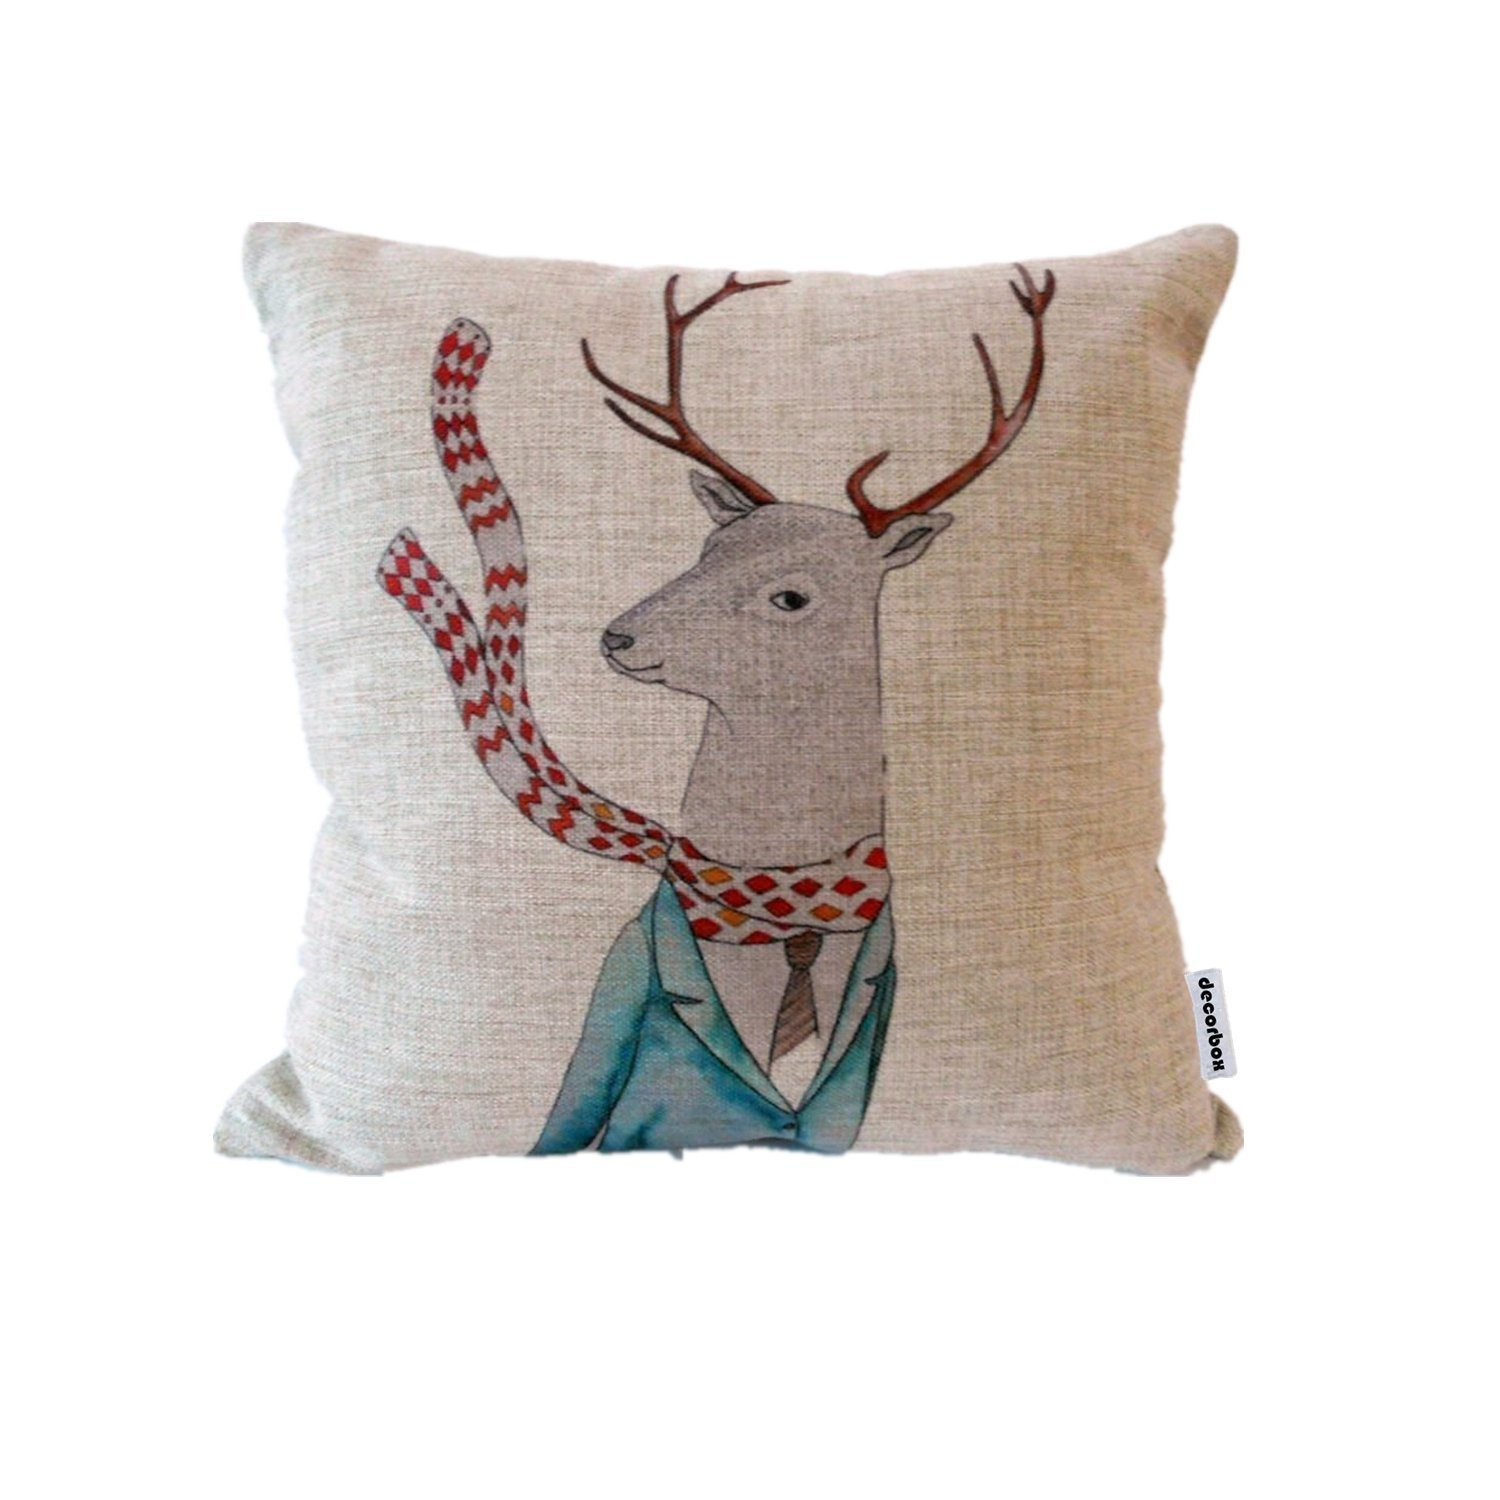 Whimsical reindeer Christmas decor pillow. #christmasdecor #reindeer #pillow #cushion #whimsical